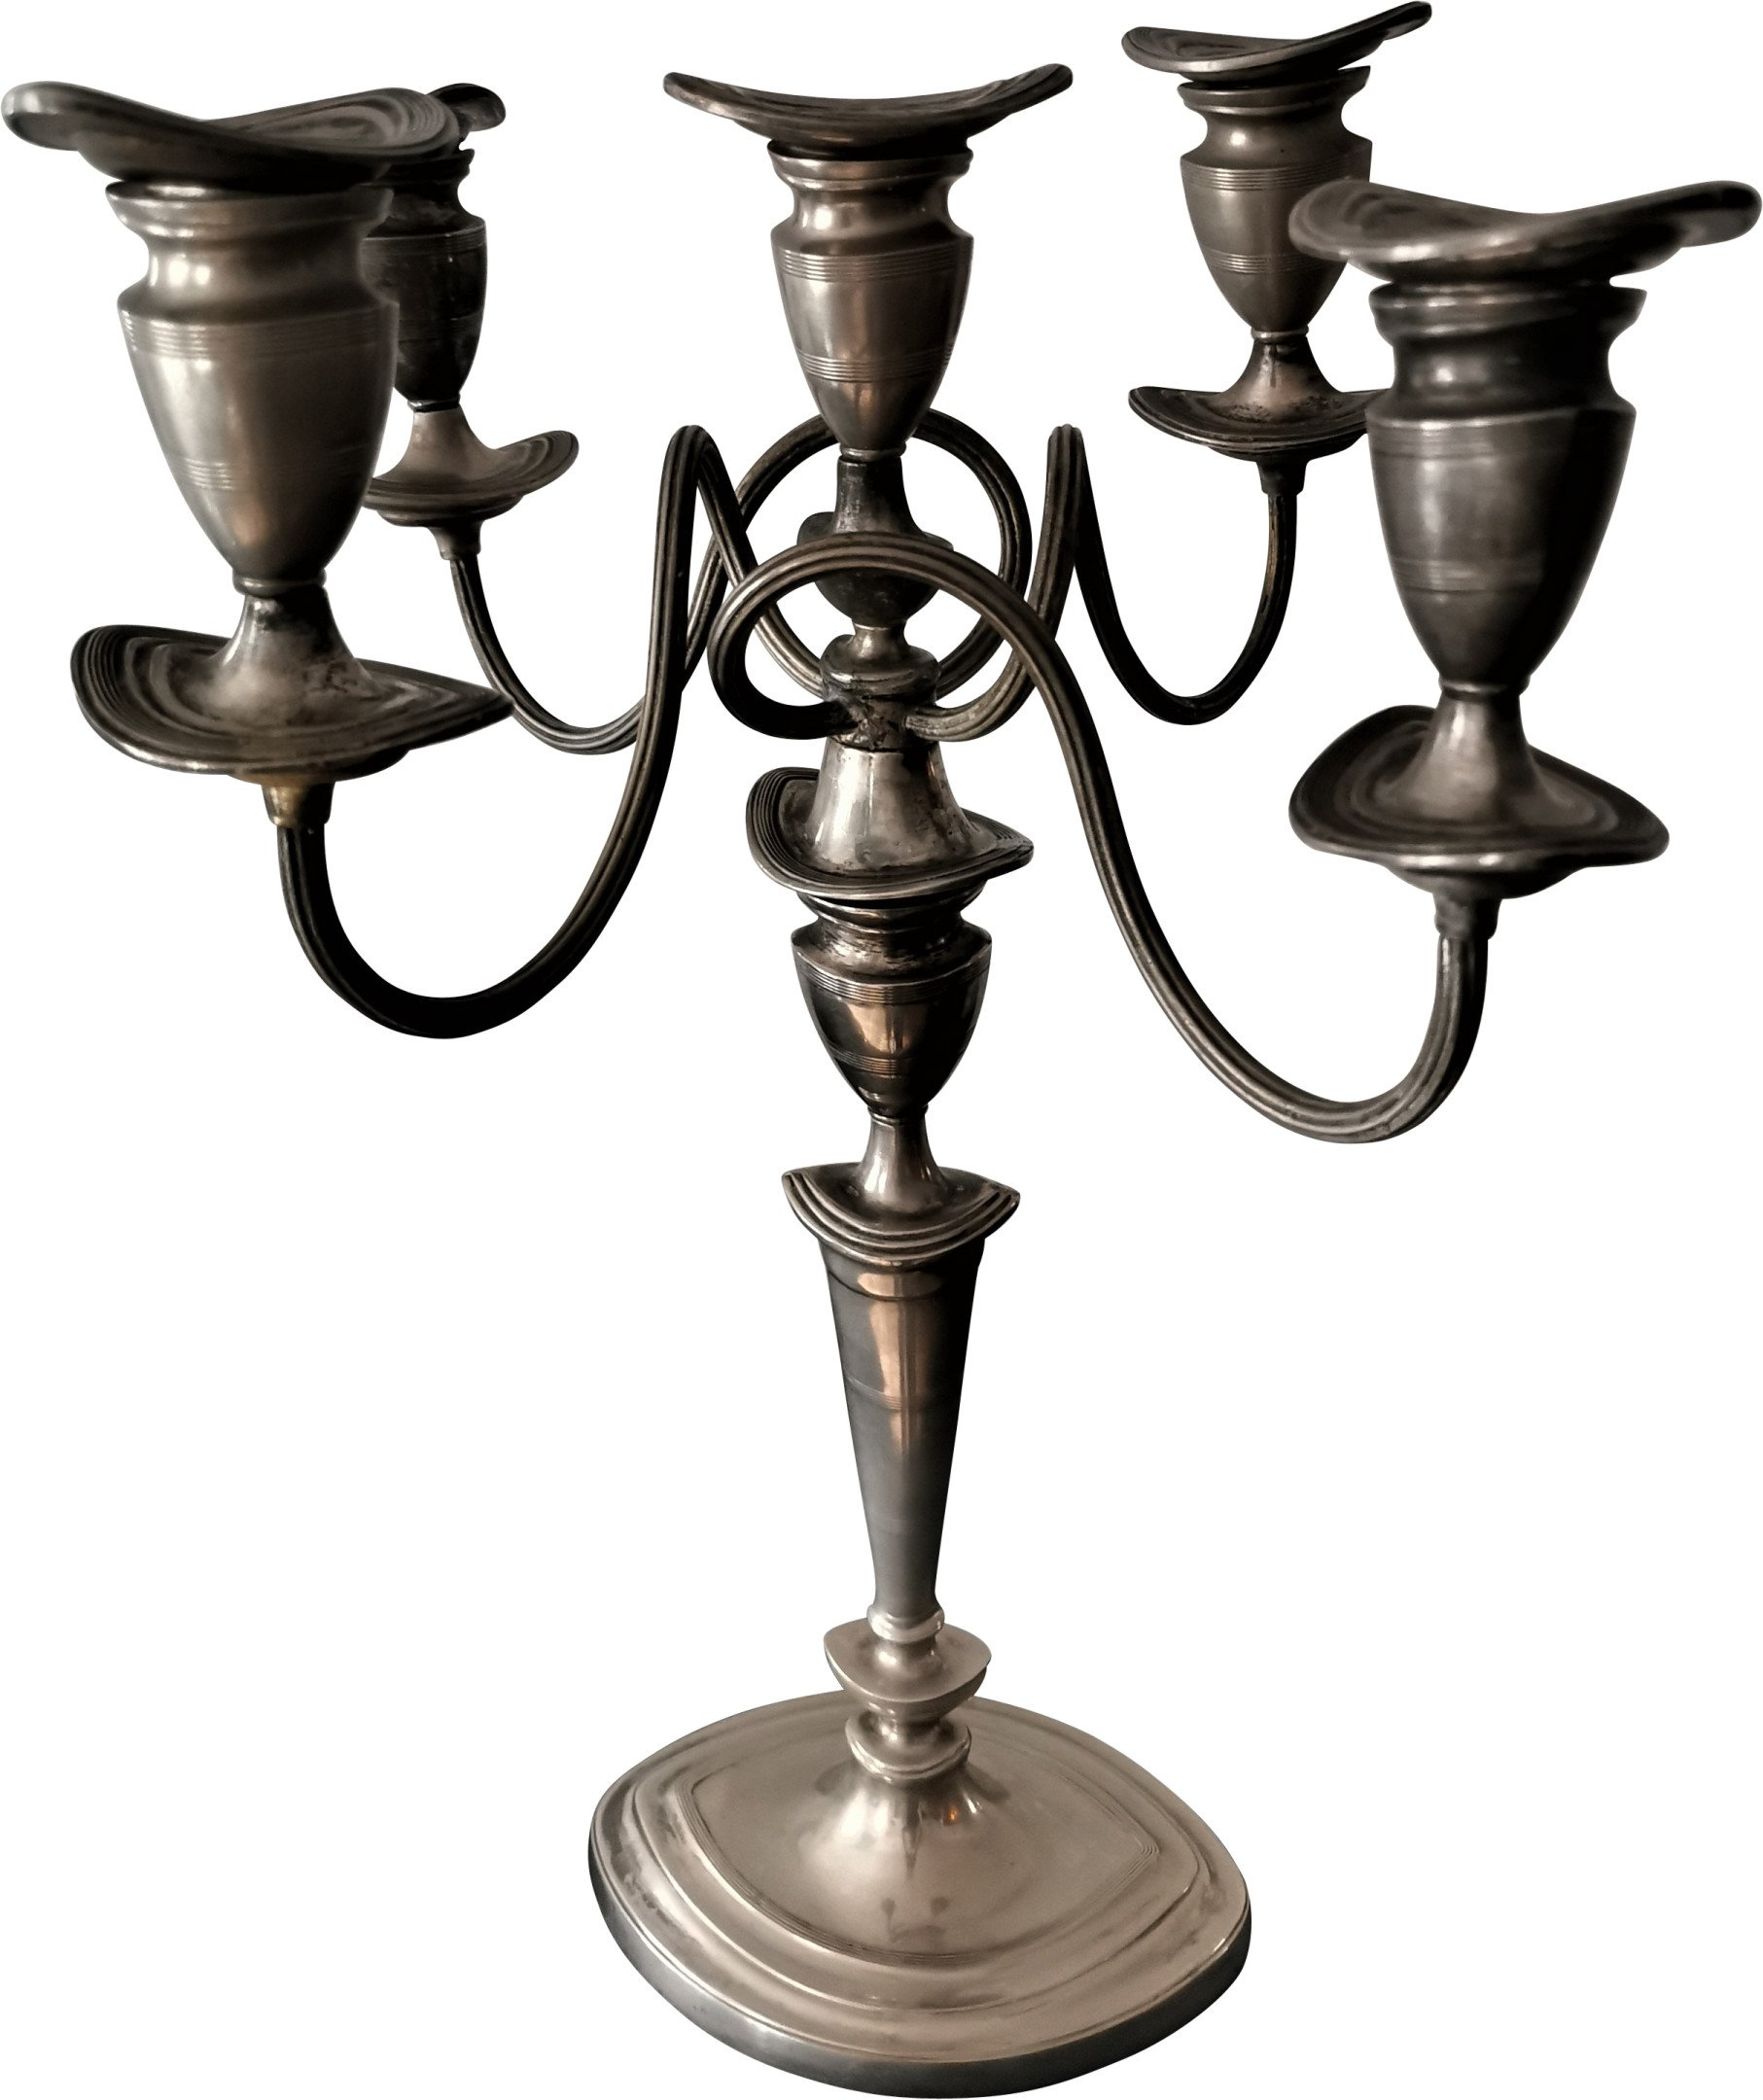 Candleholder, 19th C.